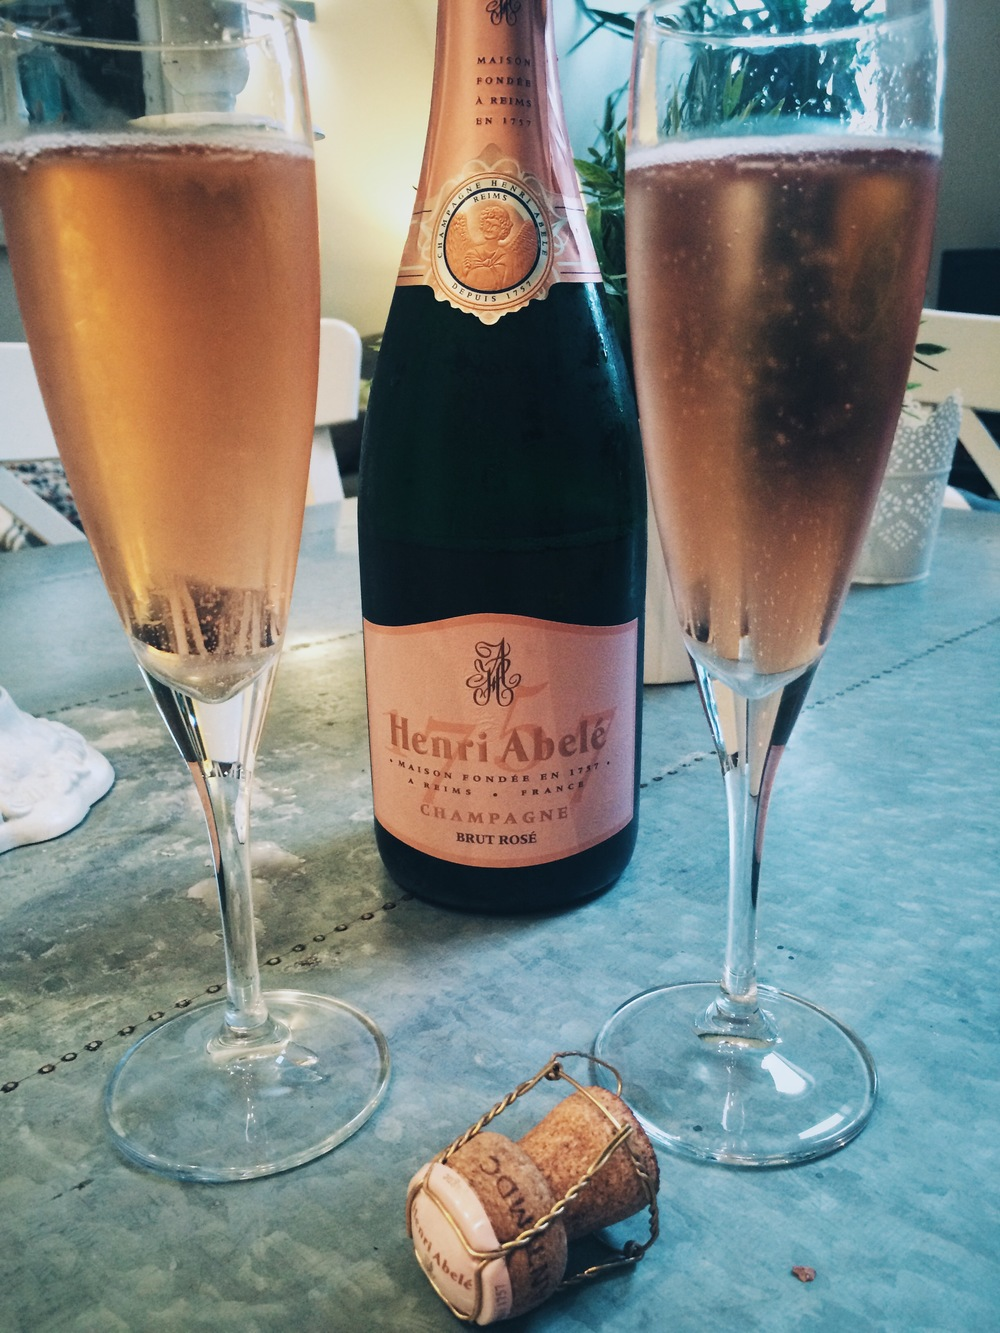 Christmas Day Bubbles: Henri Abelé Brut Rosé, a new favorite.